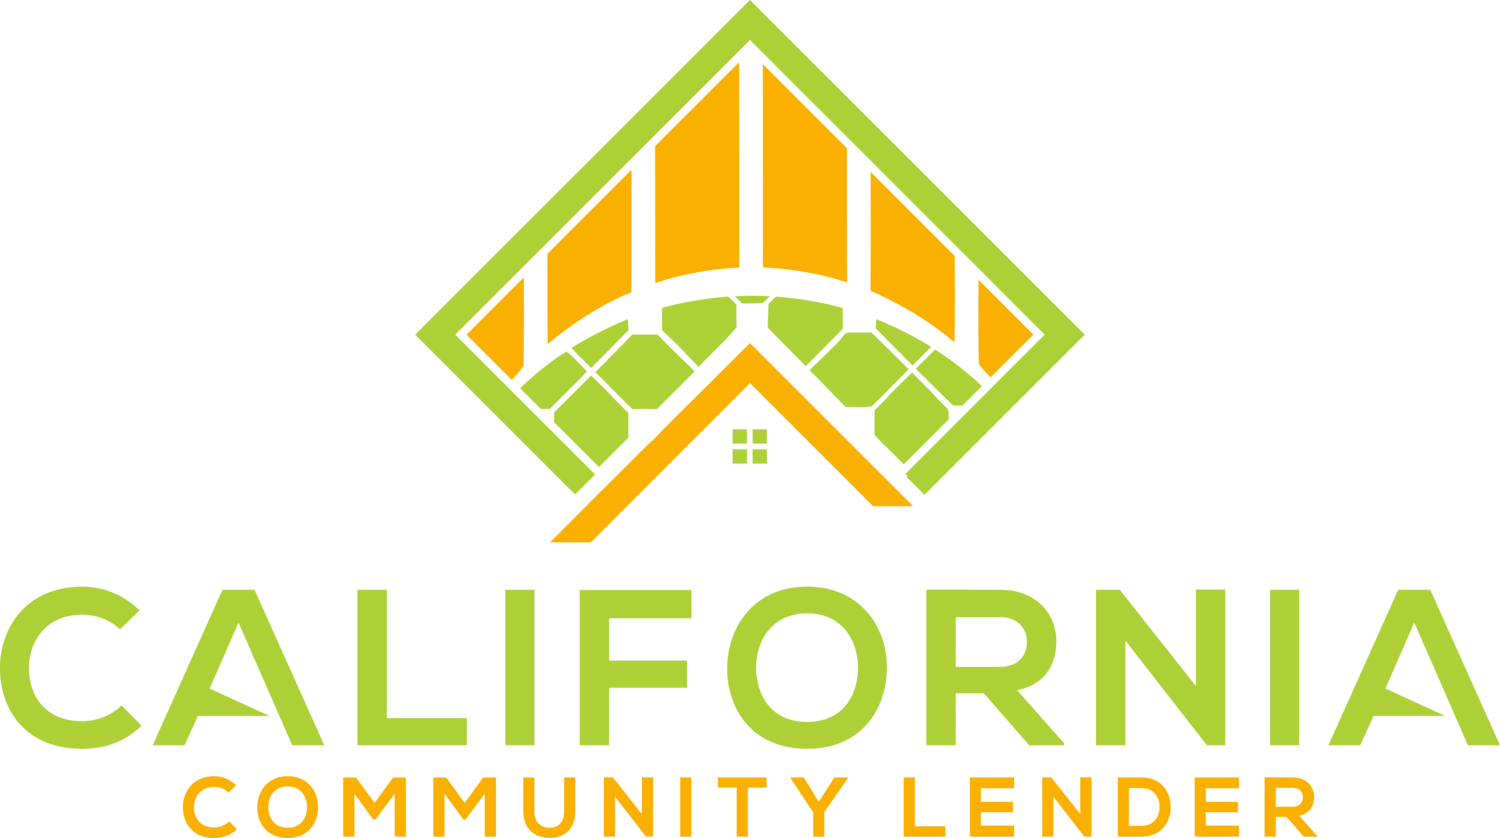 California Community Lender Inc.